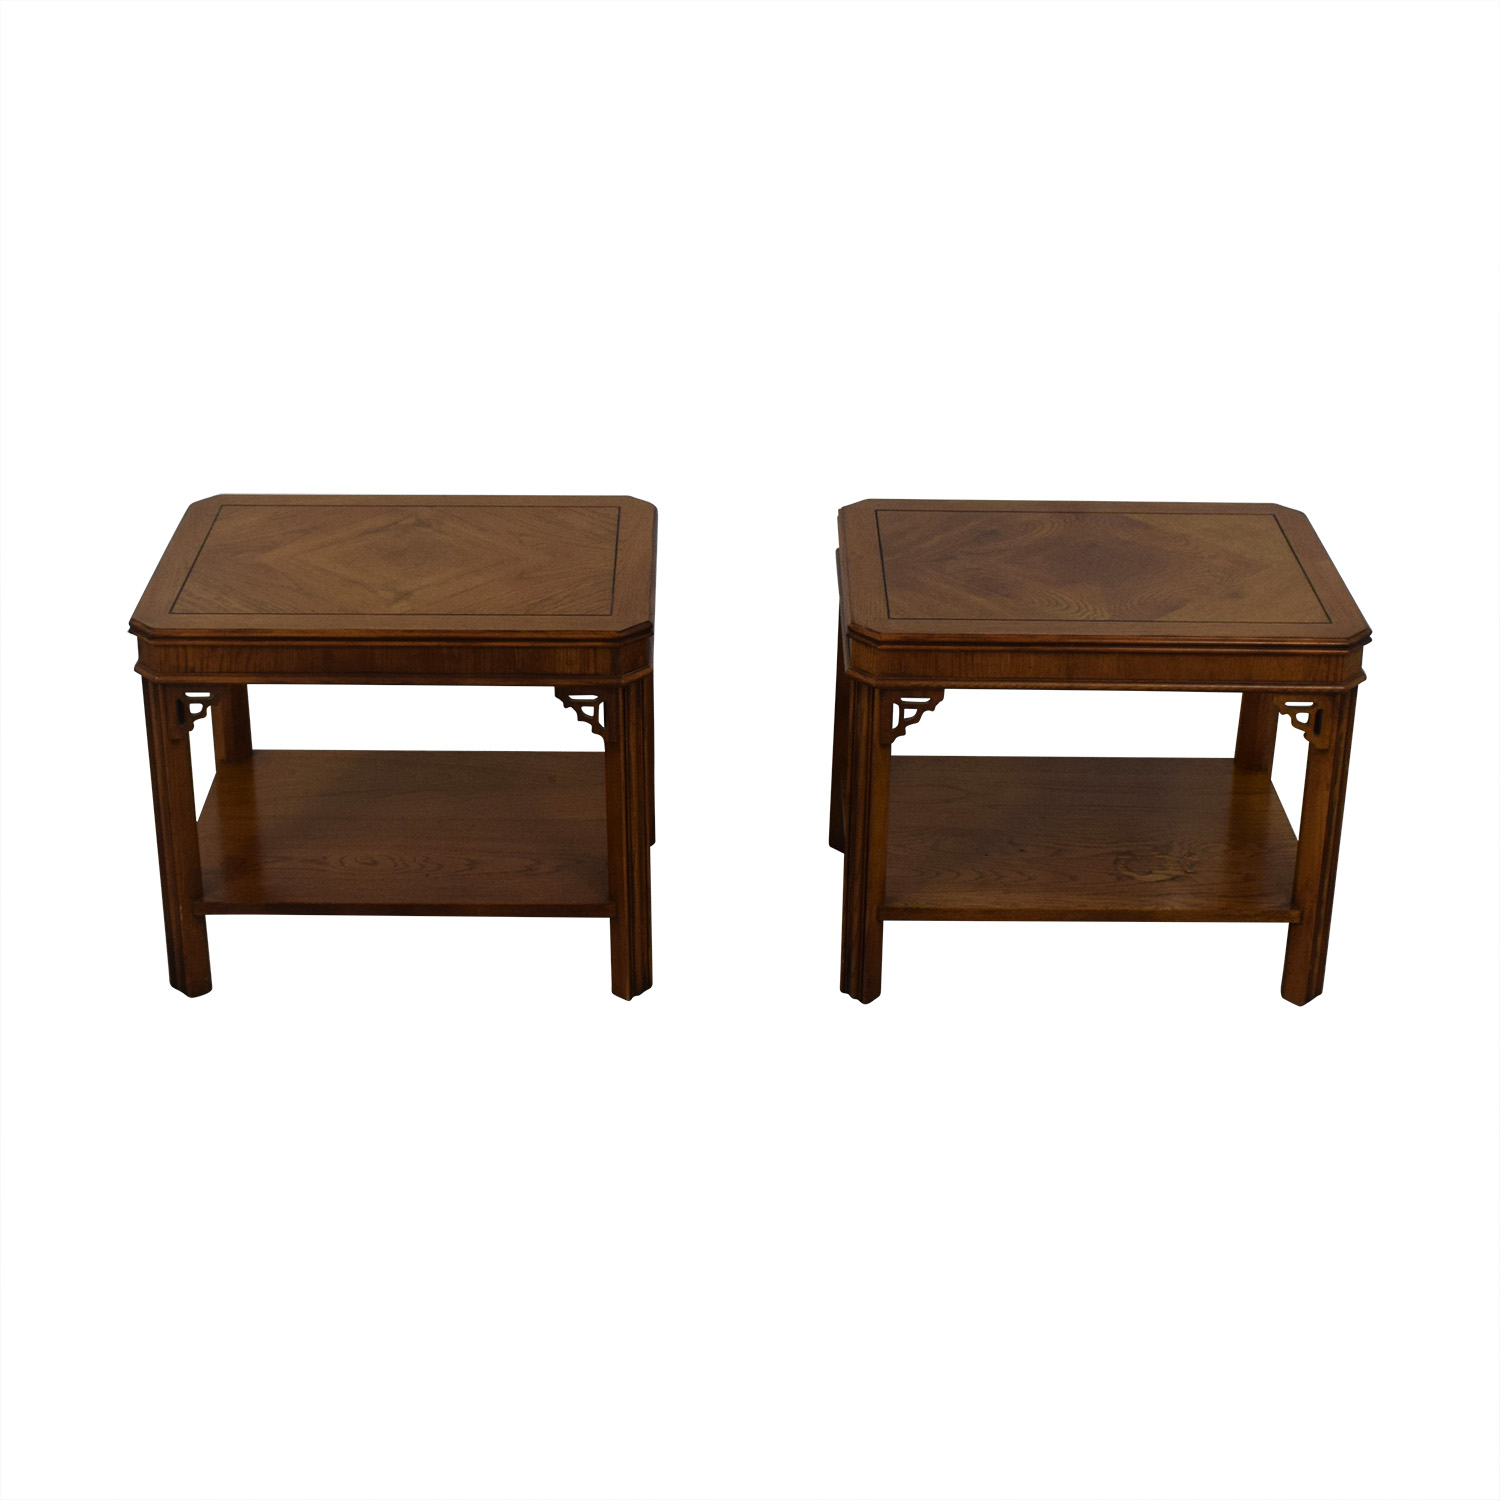 Lane Furniture Decorative Side Tables / End Tables